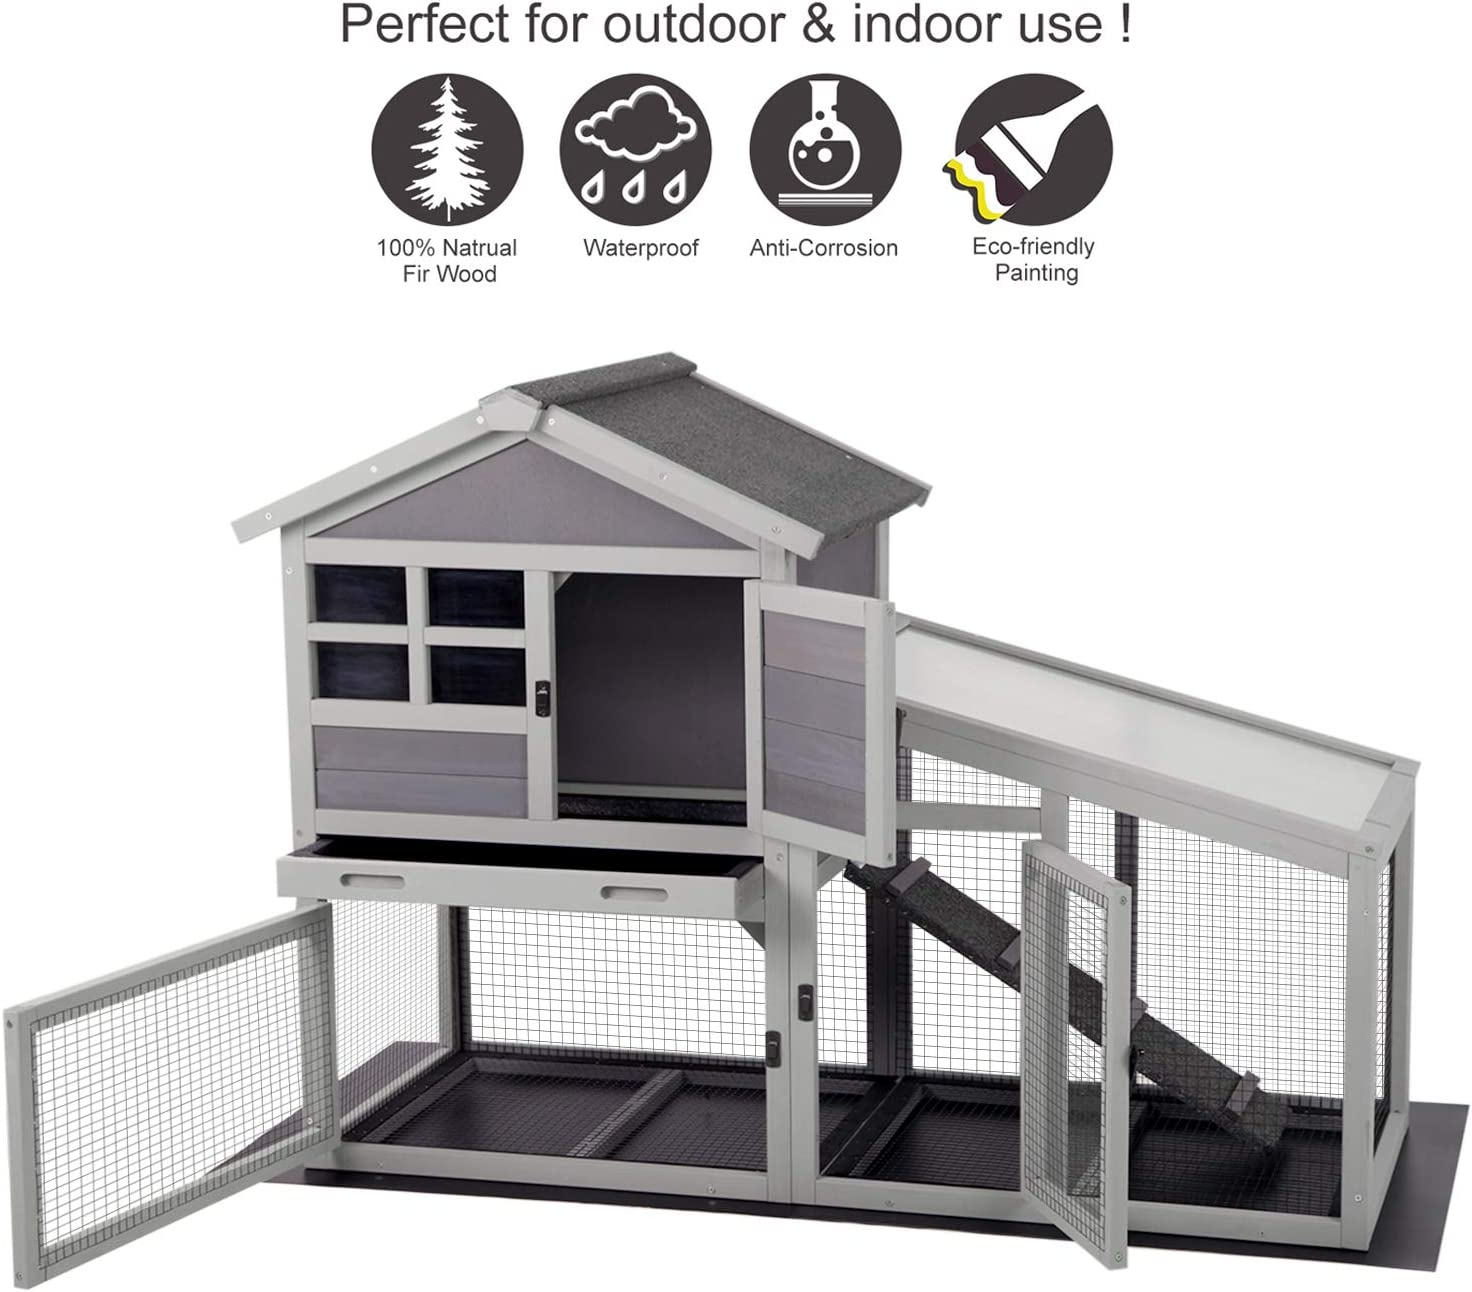 15+ Aivituvin Rabbit Hutch Indoor and Outdoor,Rabbit cage with Deeper No  LeakageTray, Bunny Cage with Removable Bottom Wire Mesh & PVC Layer,  Upgrade ... Image